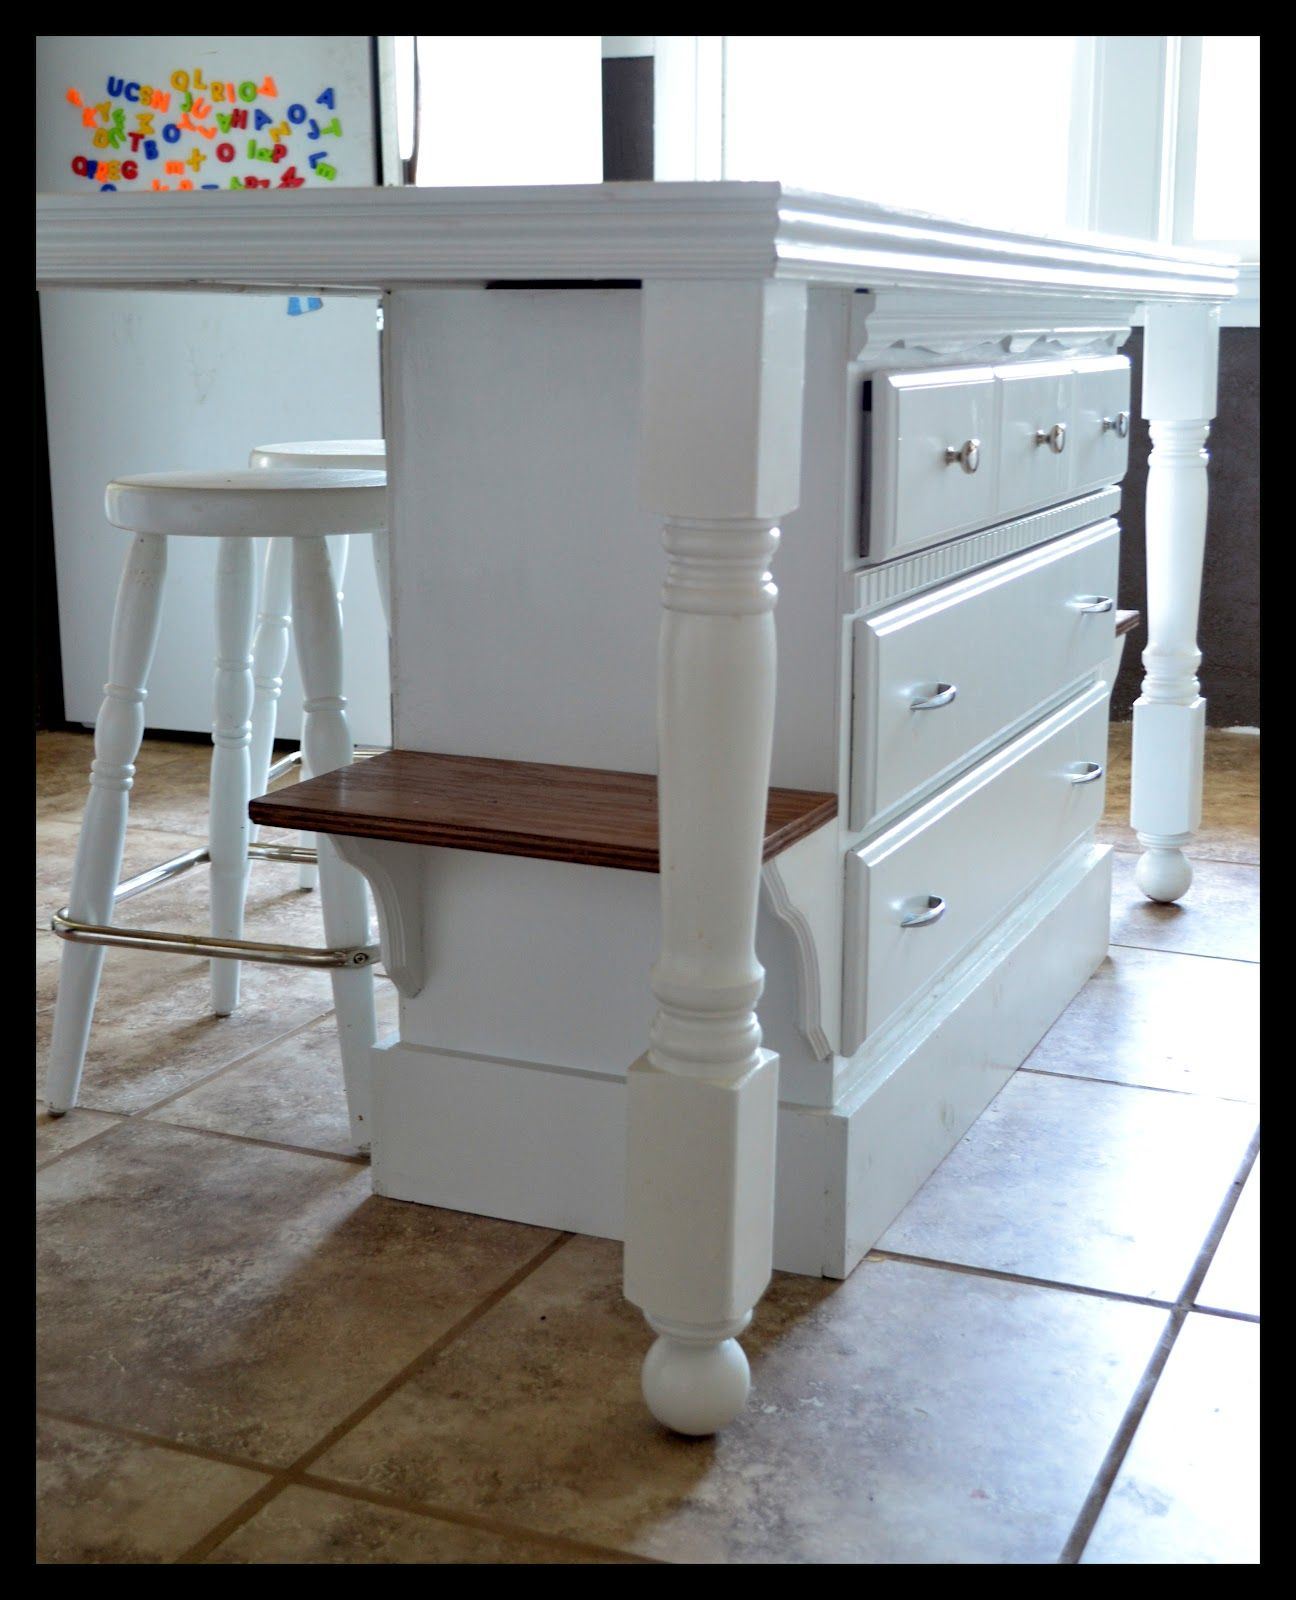 Ingenious Repurposing Unusual Kitchen Islands And Printers: Small Kitchen Islands With Stools